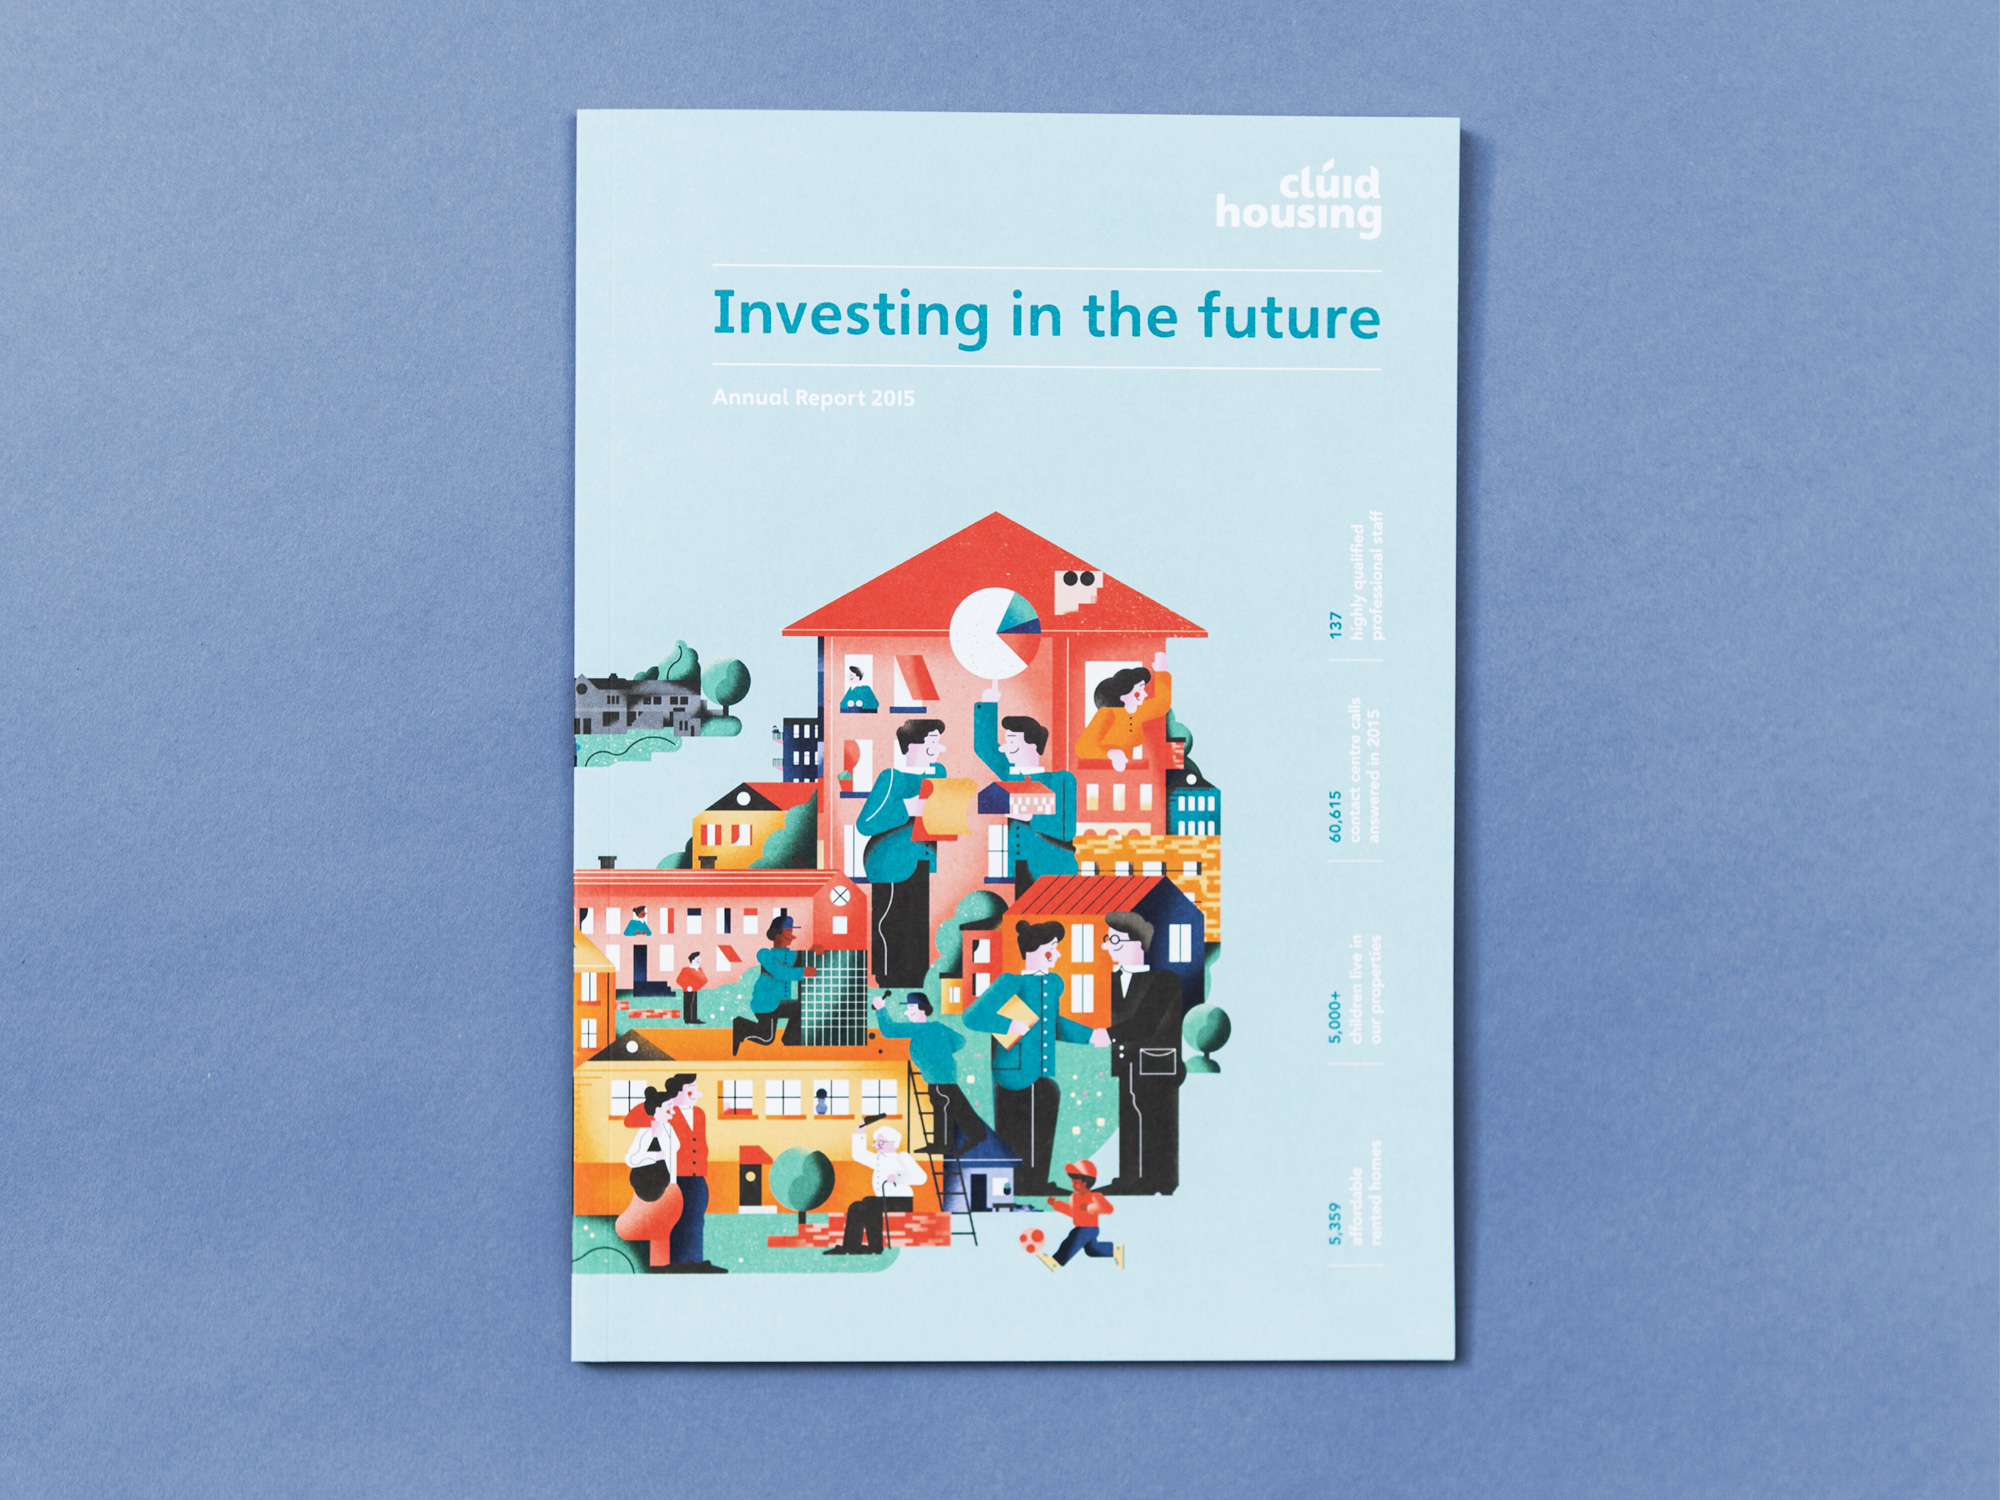 Cover image: Clúid Housing Annual Report